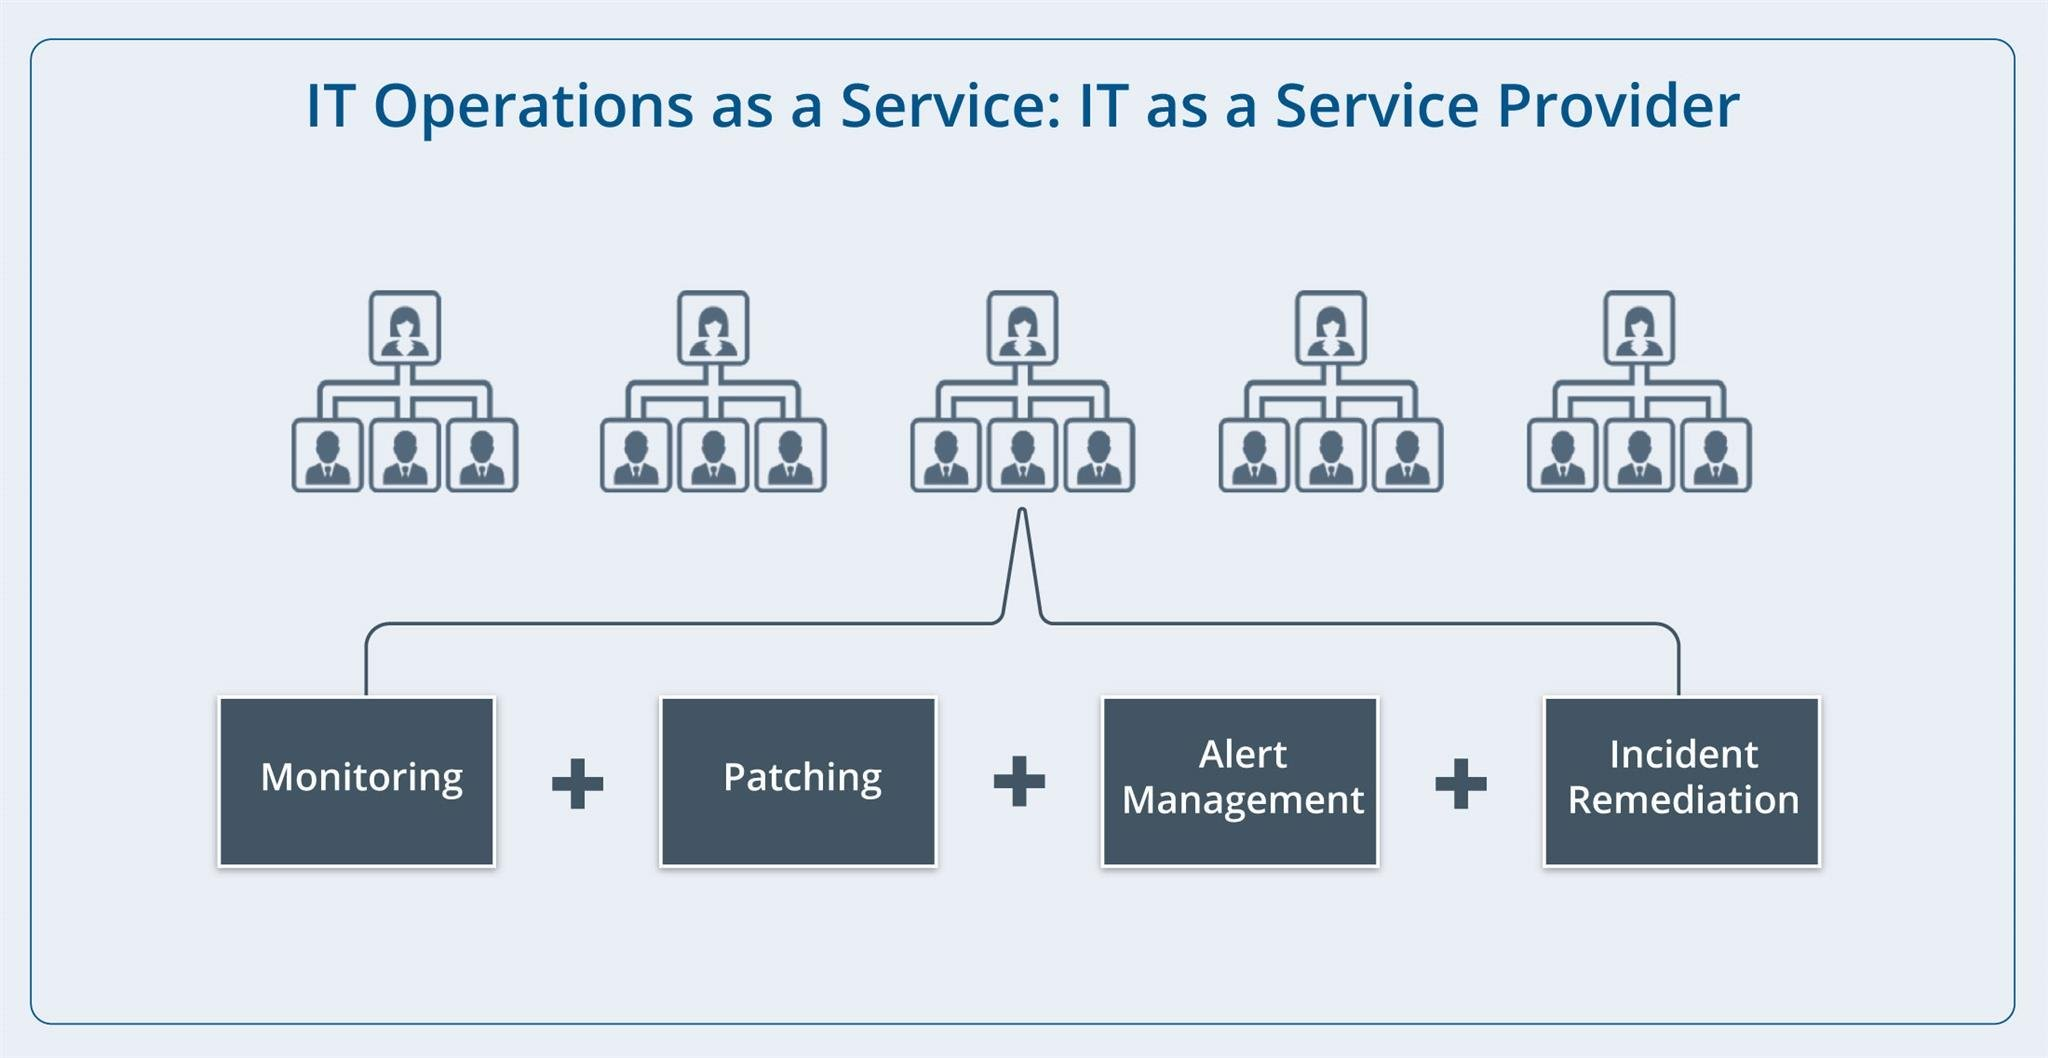 IT Operations as a Service